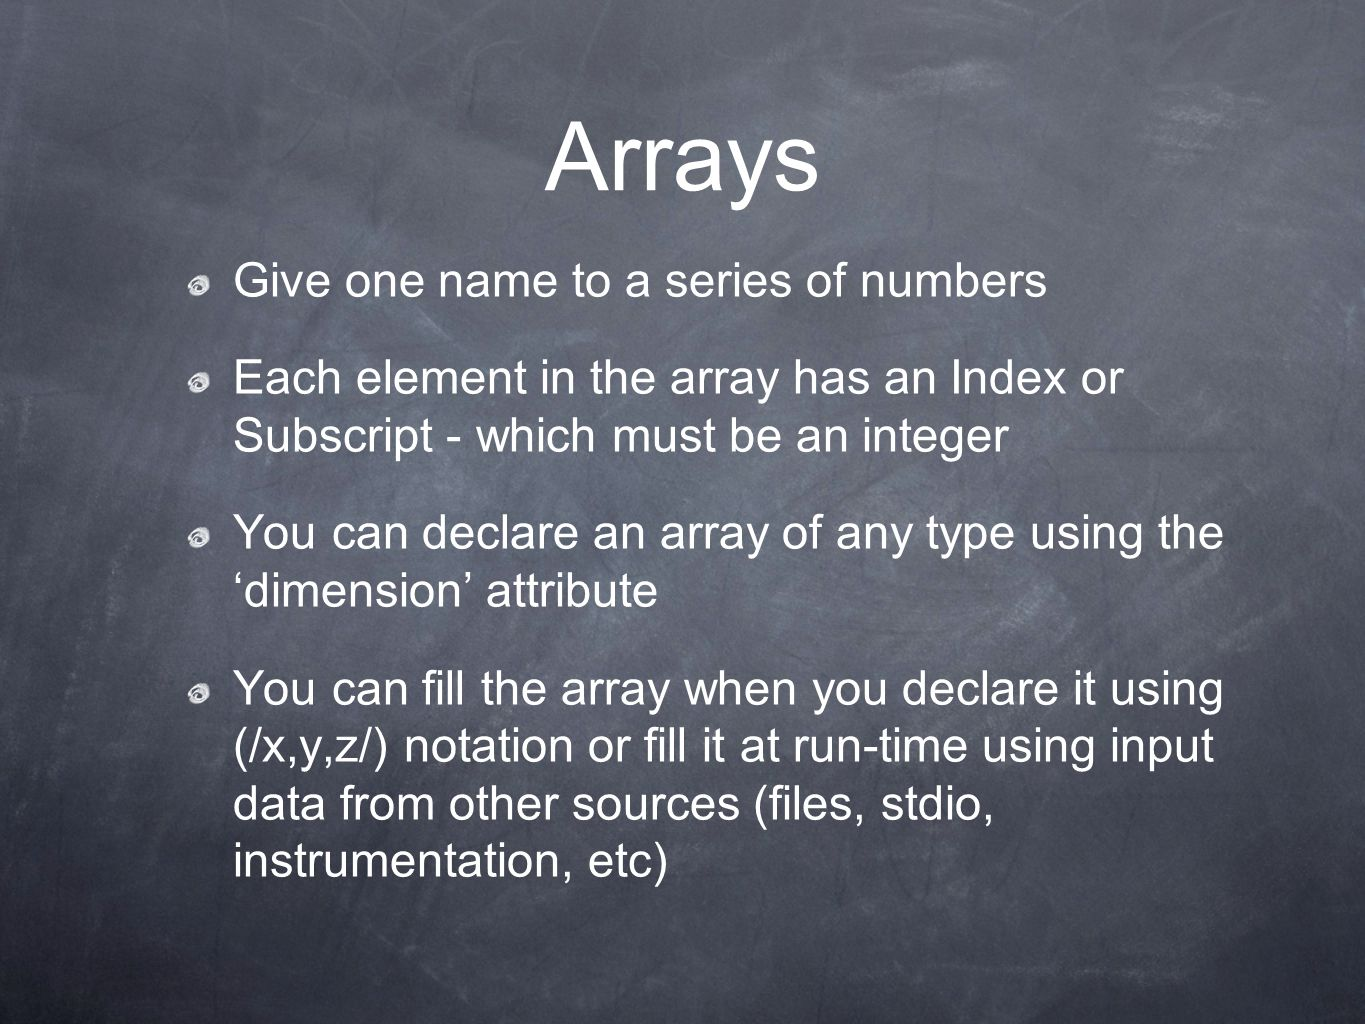 Arrays Give one name to a series of numbers Each element in the array has an Index or Subscript - which must be an integer You can declare an array of any type using the 'dimension' attribute You can fill the array when you declare it using (/x,y,z/) notation or fill it at run-time using input data from other sources (files, stdio, instrumentation, etc)